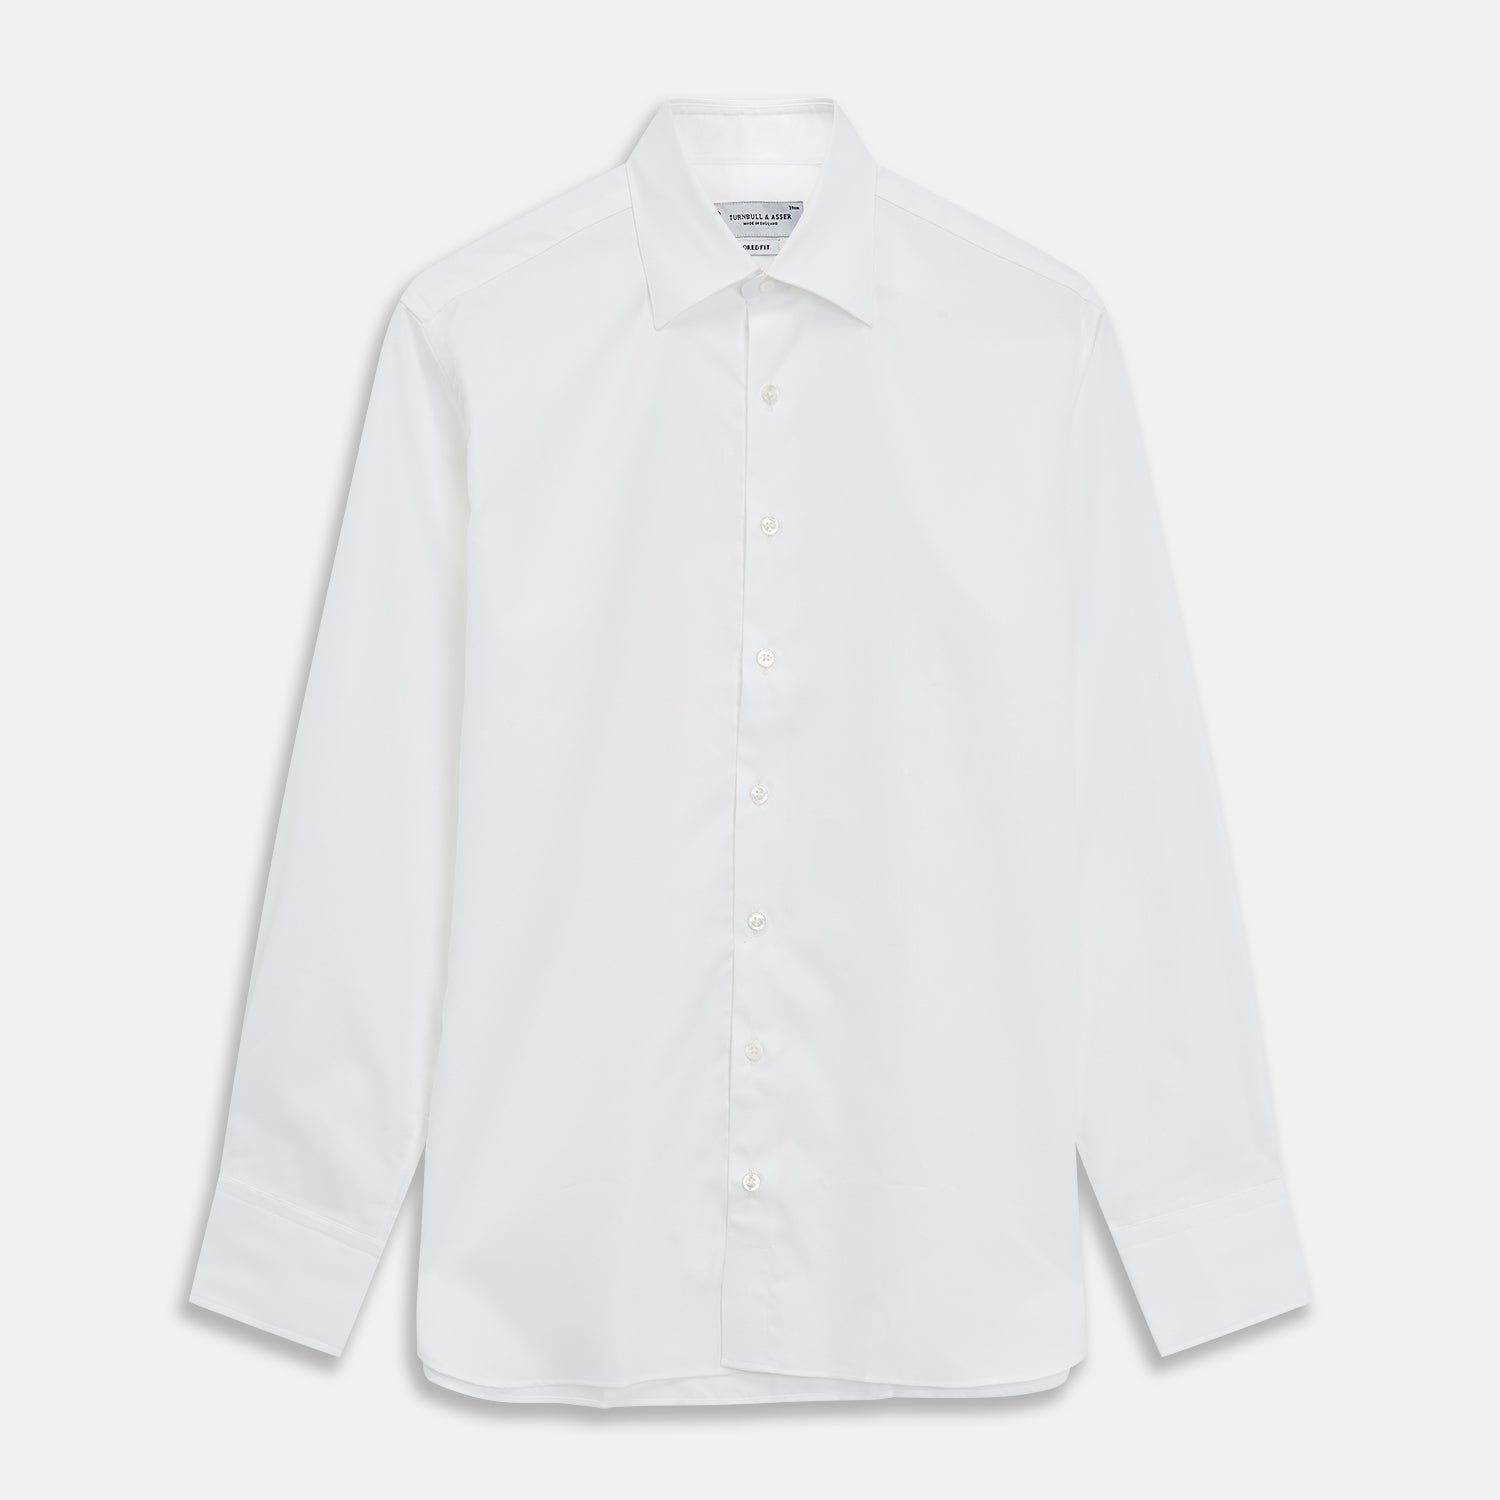 Plain White Oxford Tailored Fit Cotton Shirt with Bury Collar and 3-Button Cuff